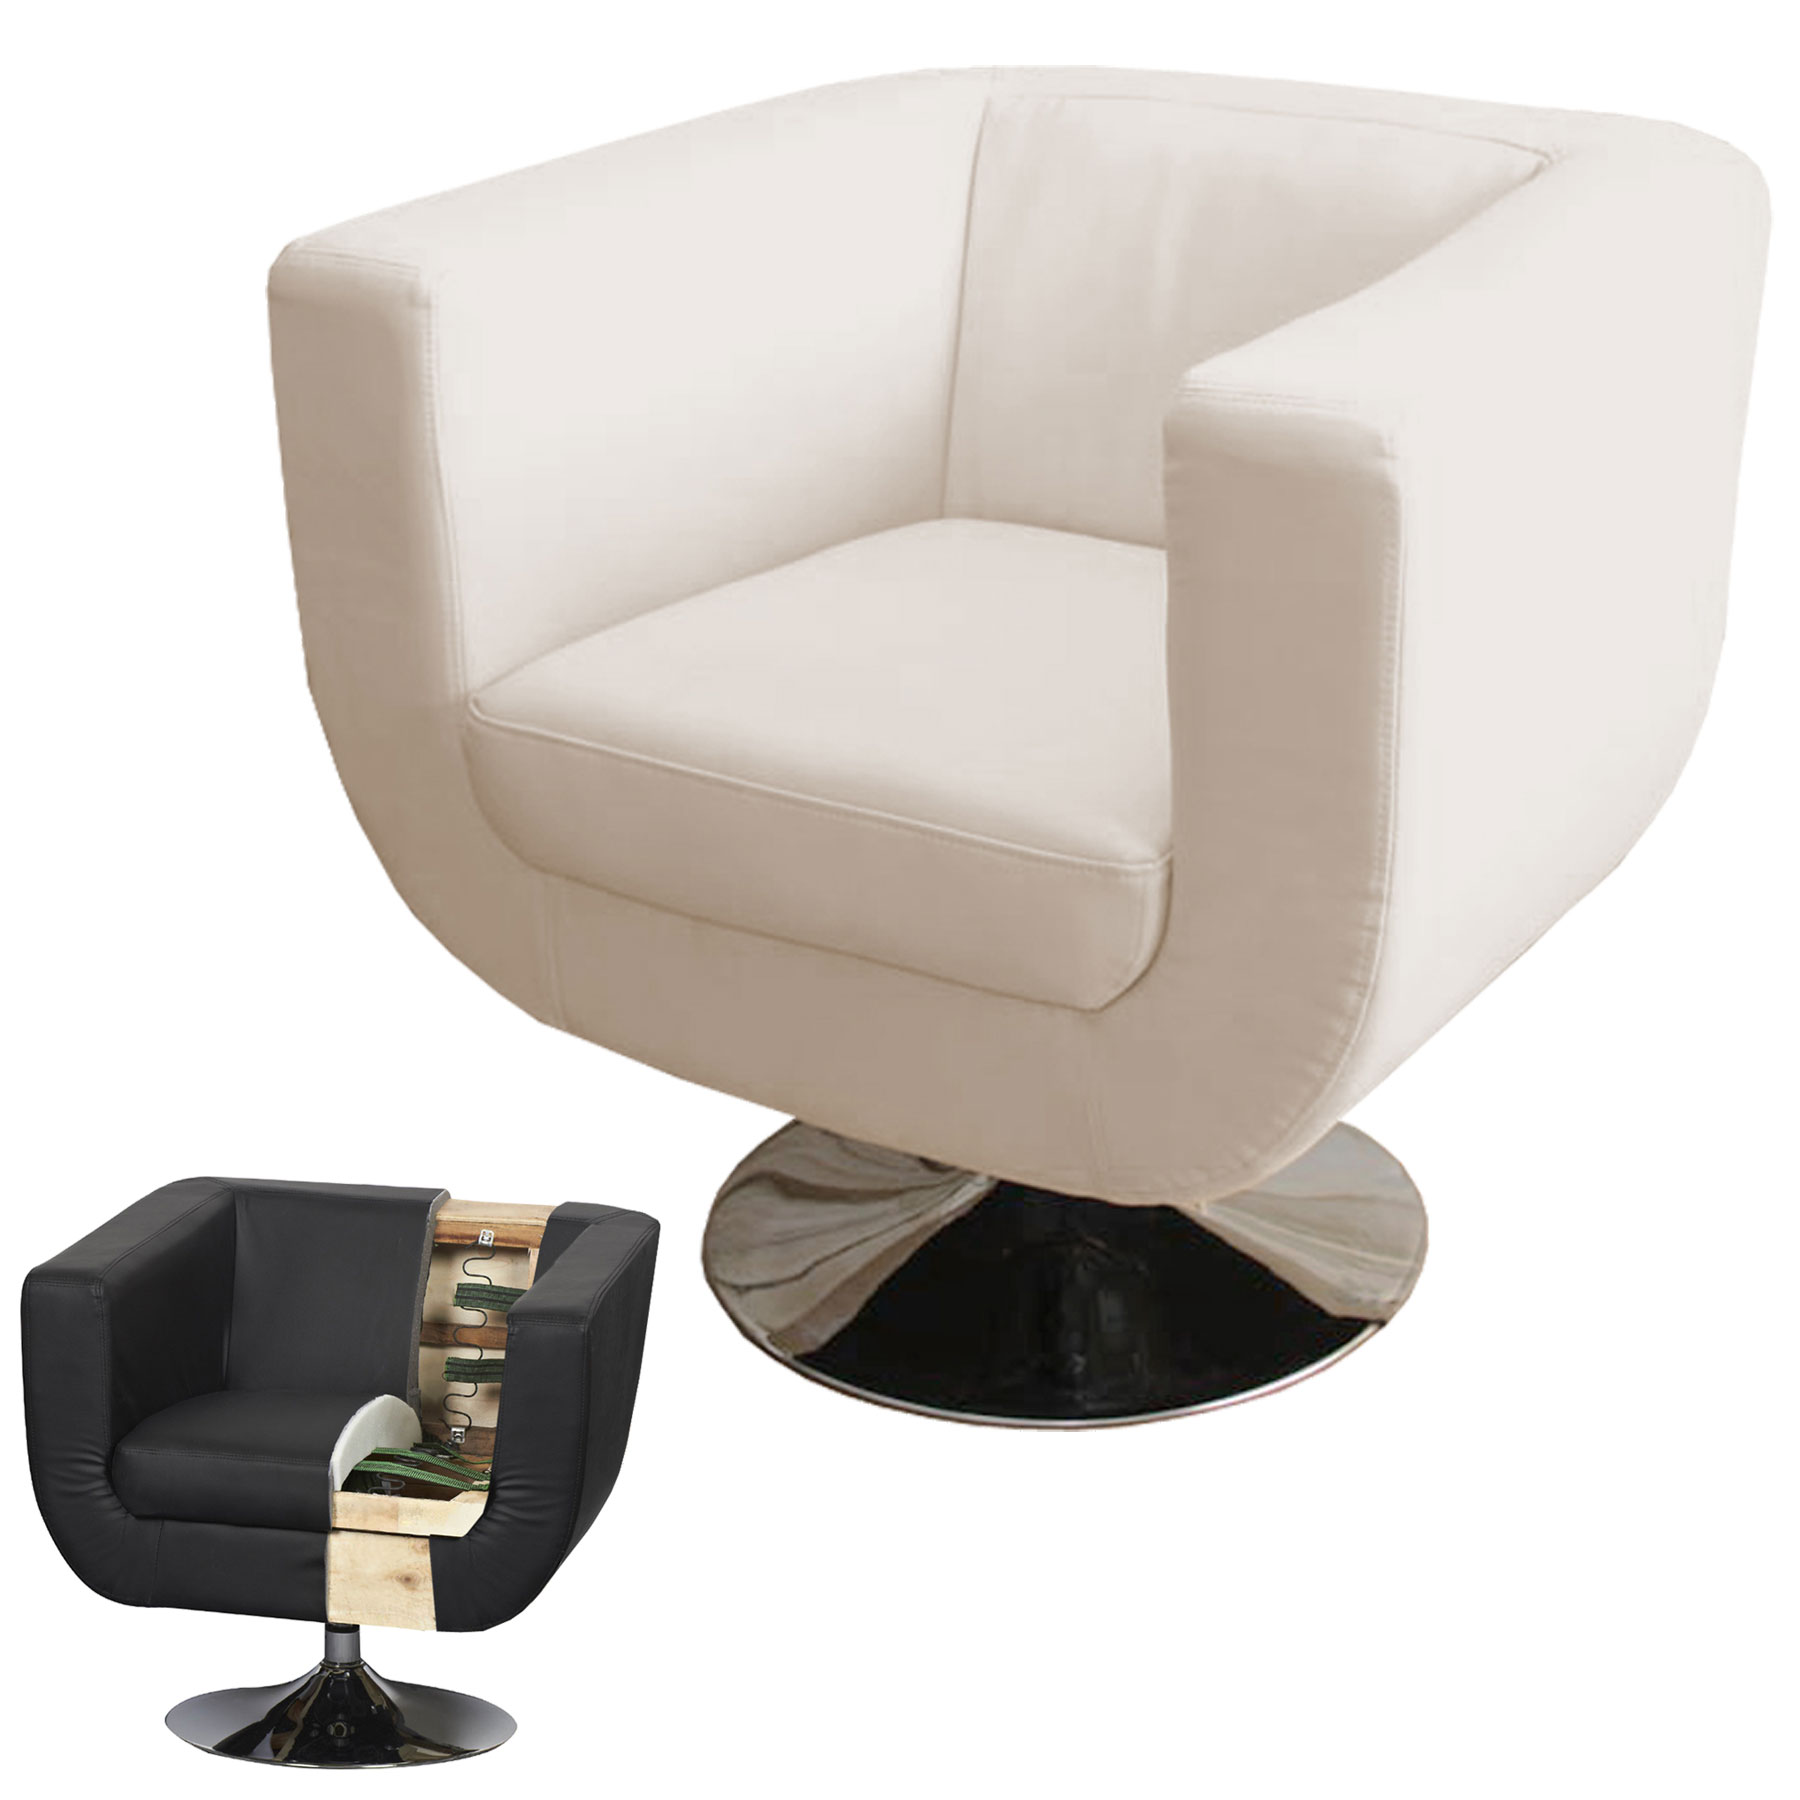 Sessel Versenden Dhl Lounge Sessel Bar Sessel Club Sessel Treviso Ii Creme